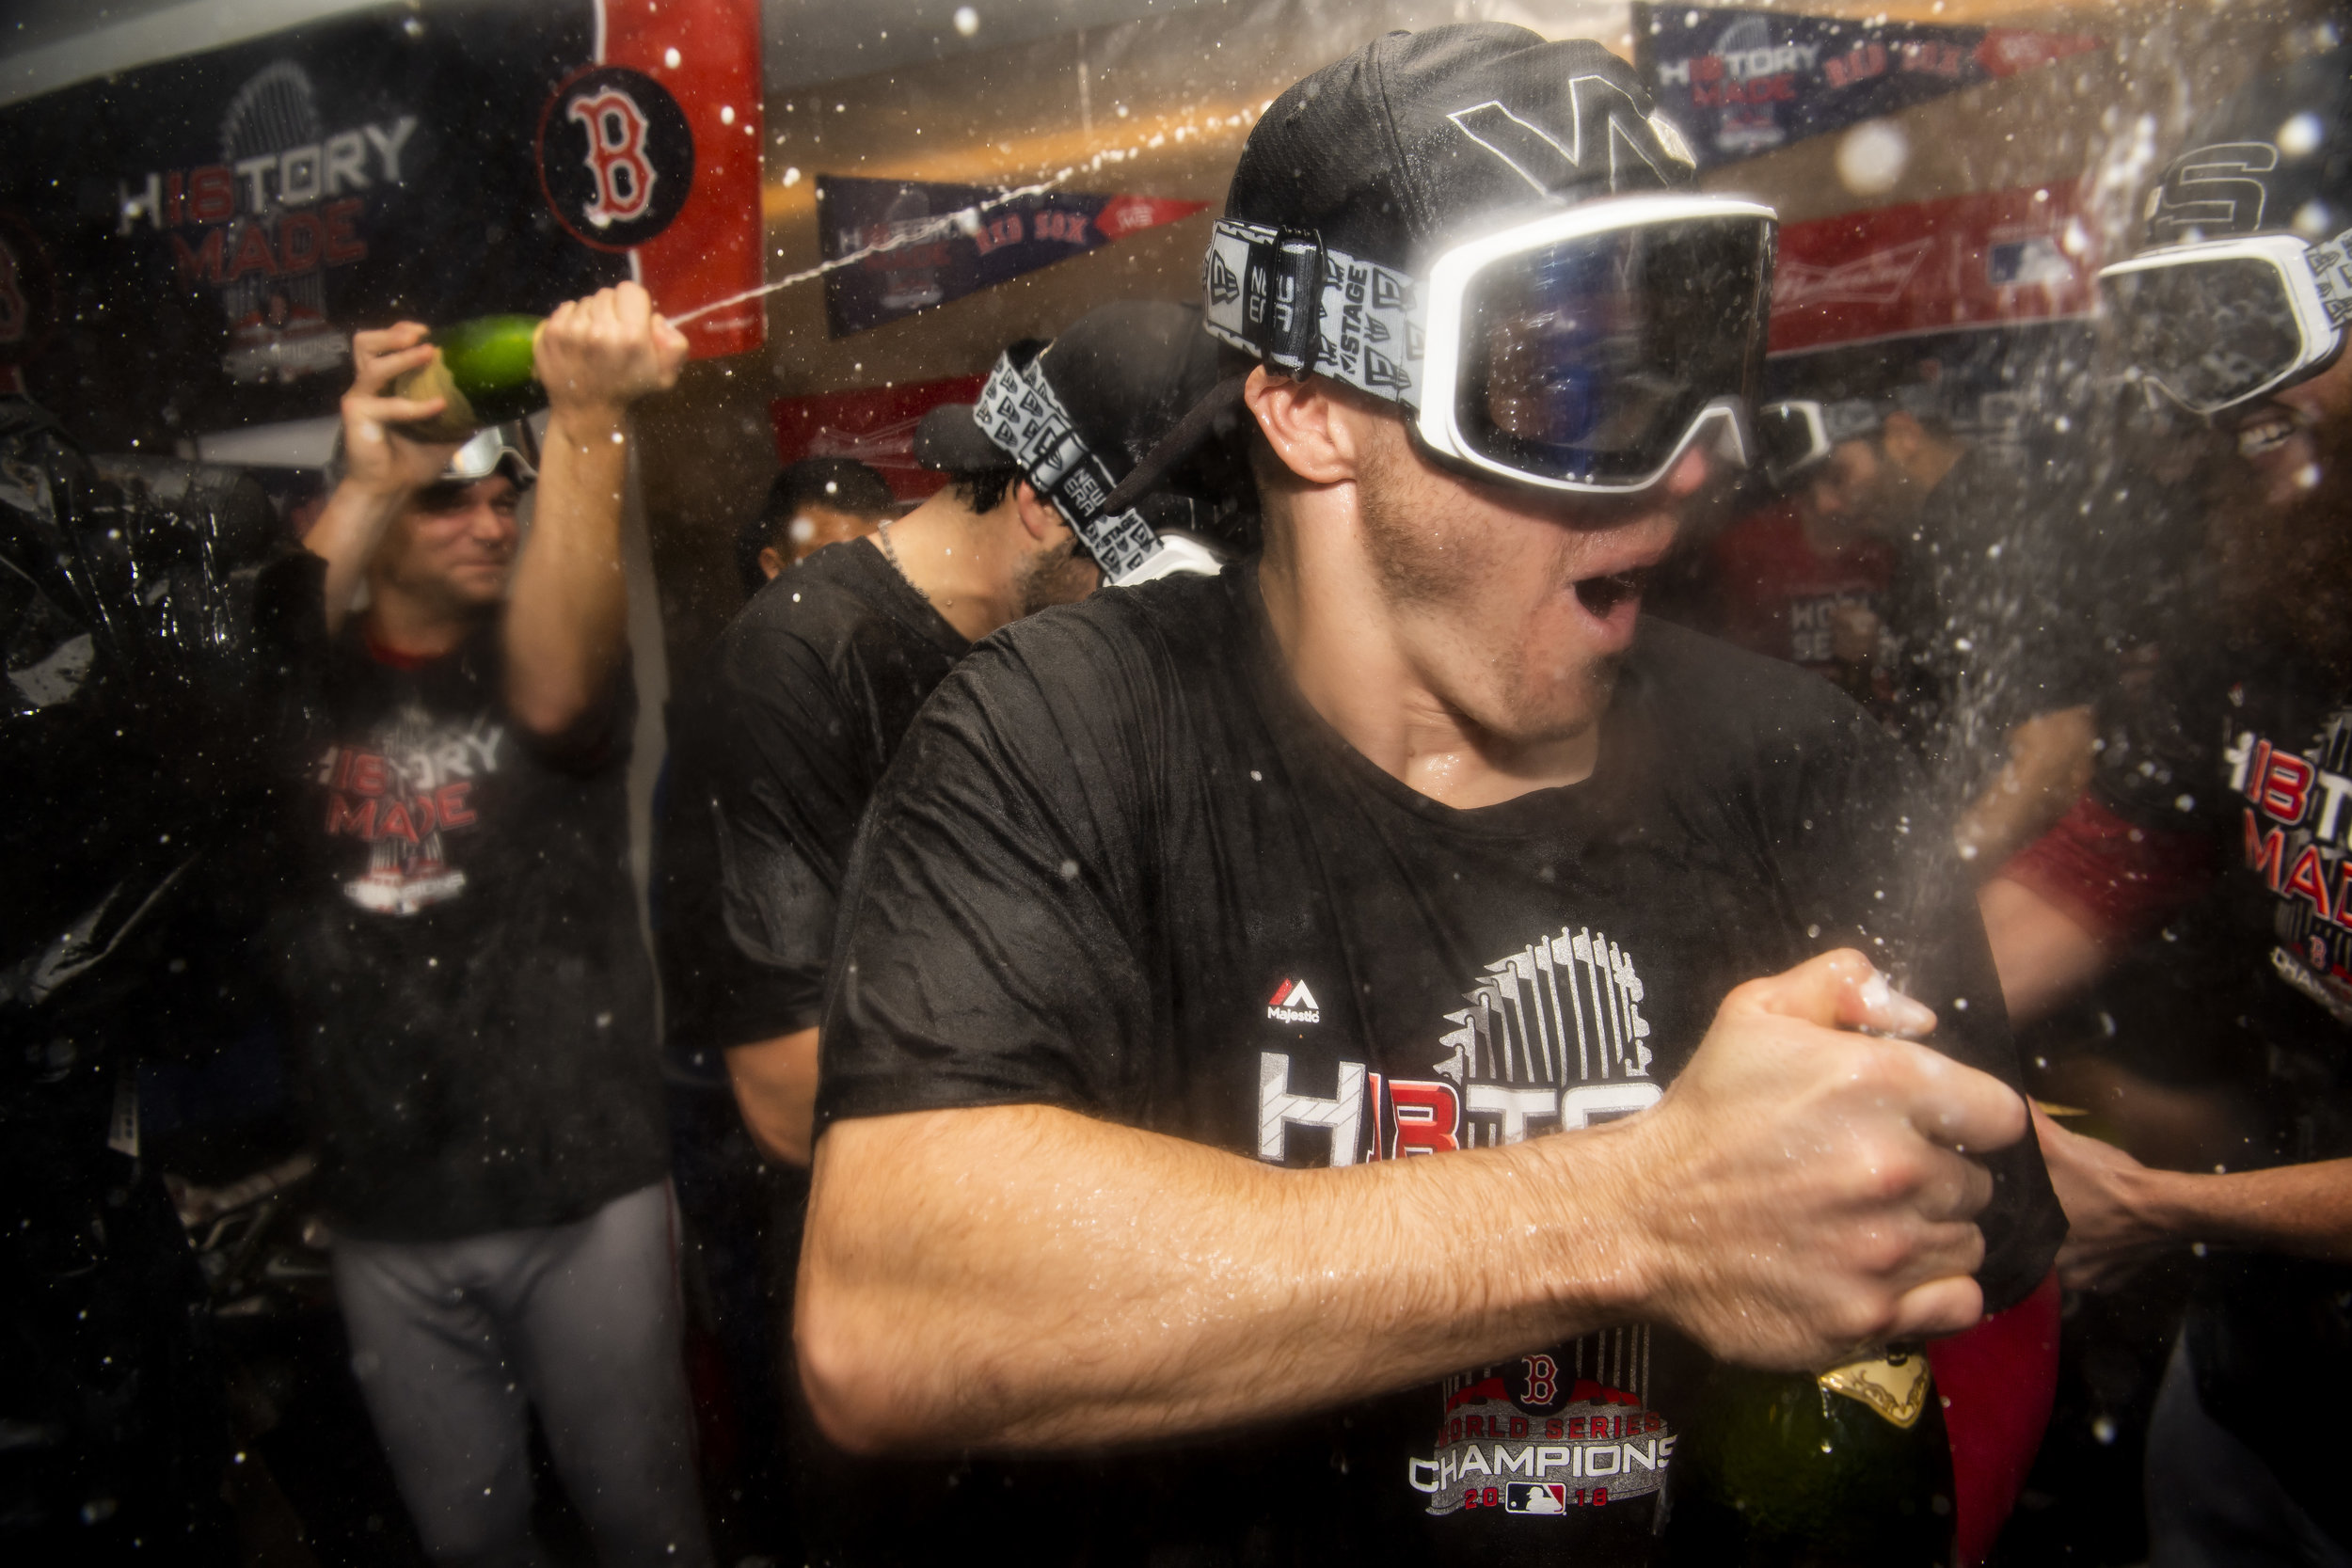 October 28, 2018, Los Angeles, Ca: Boston Red Sox infielder Brock Holt sprays champagne after the Boston Red Sox defeated the Los Angeles Dodgers in Game 5 to win the World Series at Dodger Stadium in Los Angeles, California on Saturday, October 28, 2018. (Photo by Matthew Thomas/Boston Red Sox)